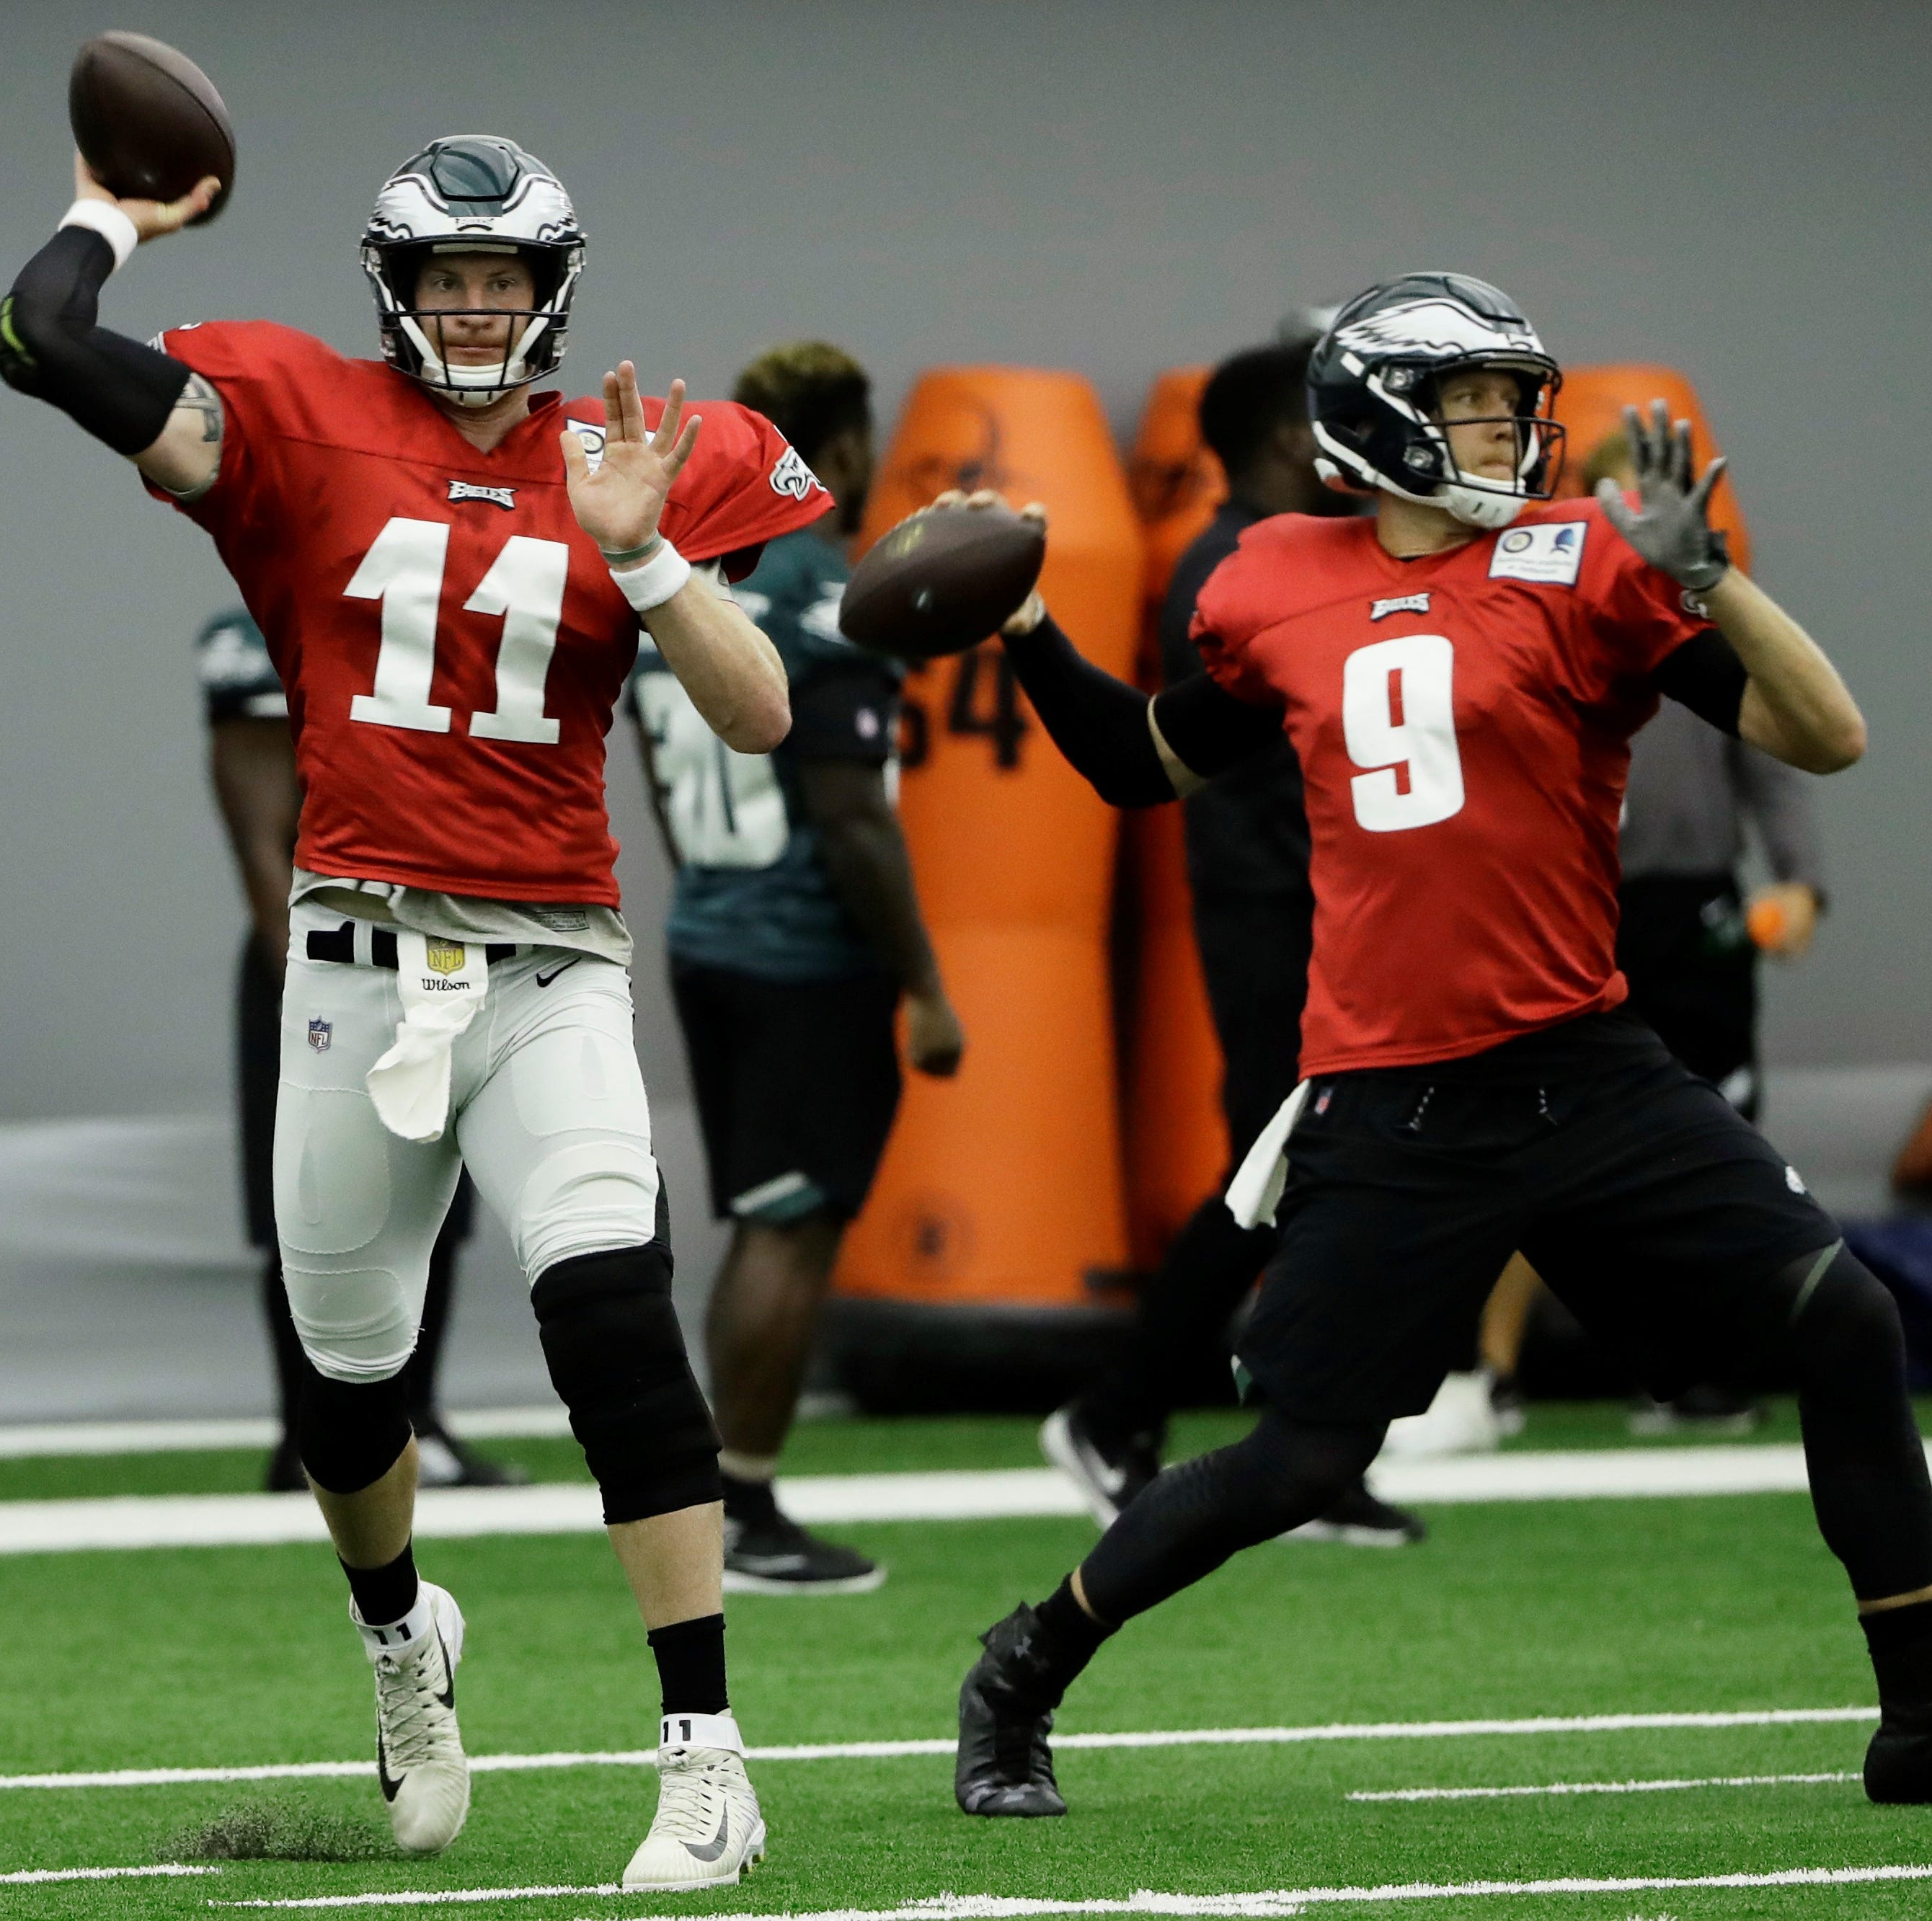 DOMOWITCH: Carson Wentz wants to play opener, but will rushing back jeopardize his career?